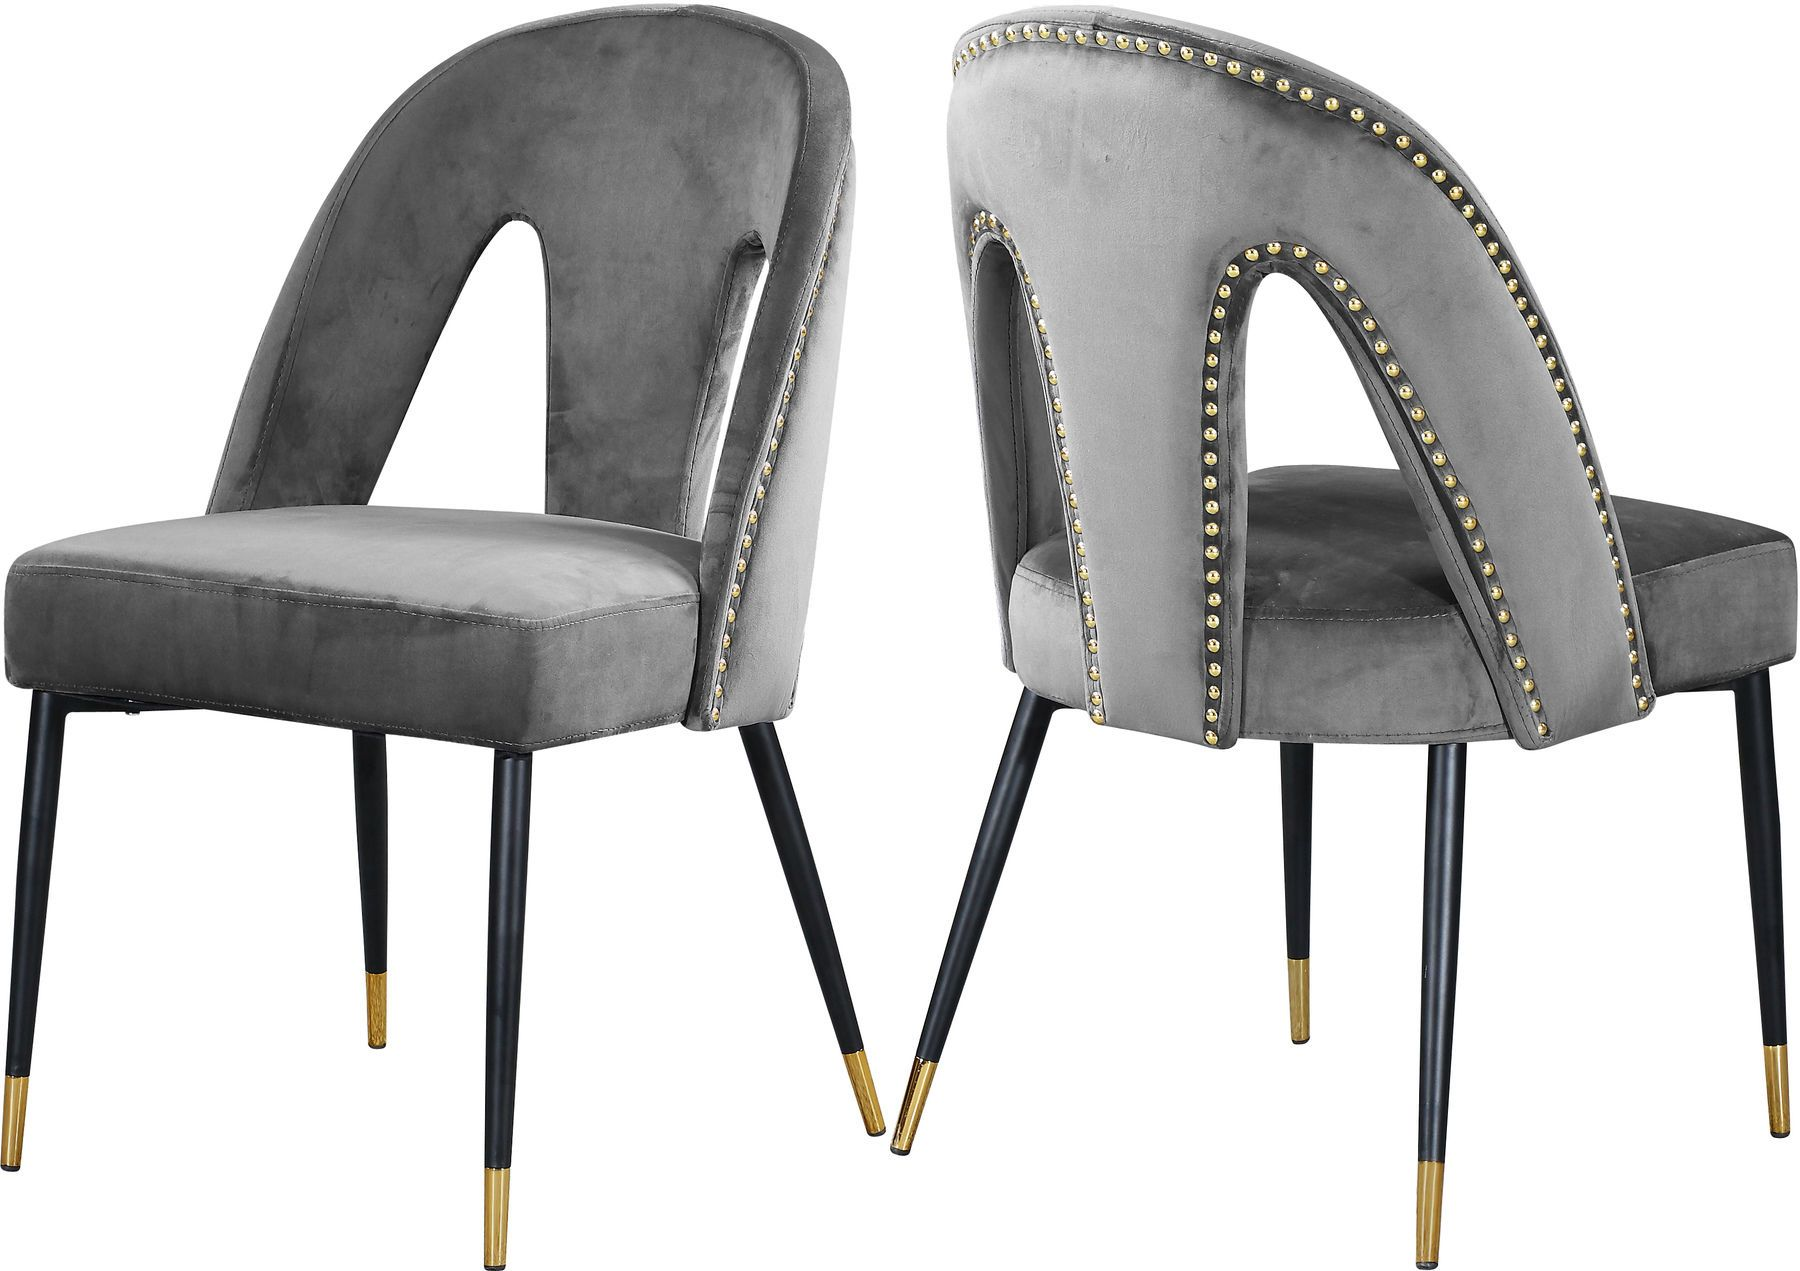 2 X Akoya Gray Dining Chair In 2020 Dining Chairs Contemporary